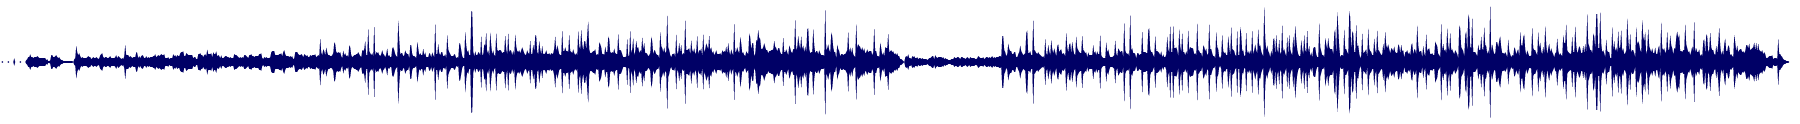 waveform of track #85083